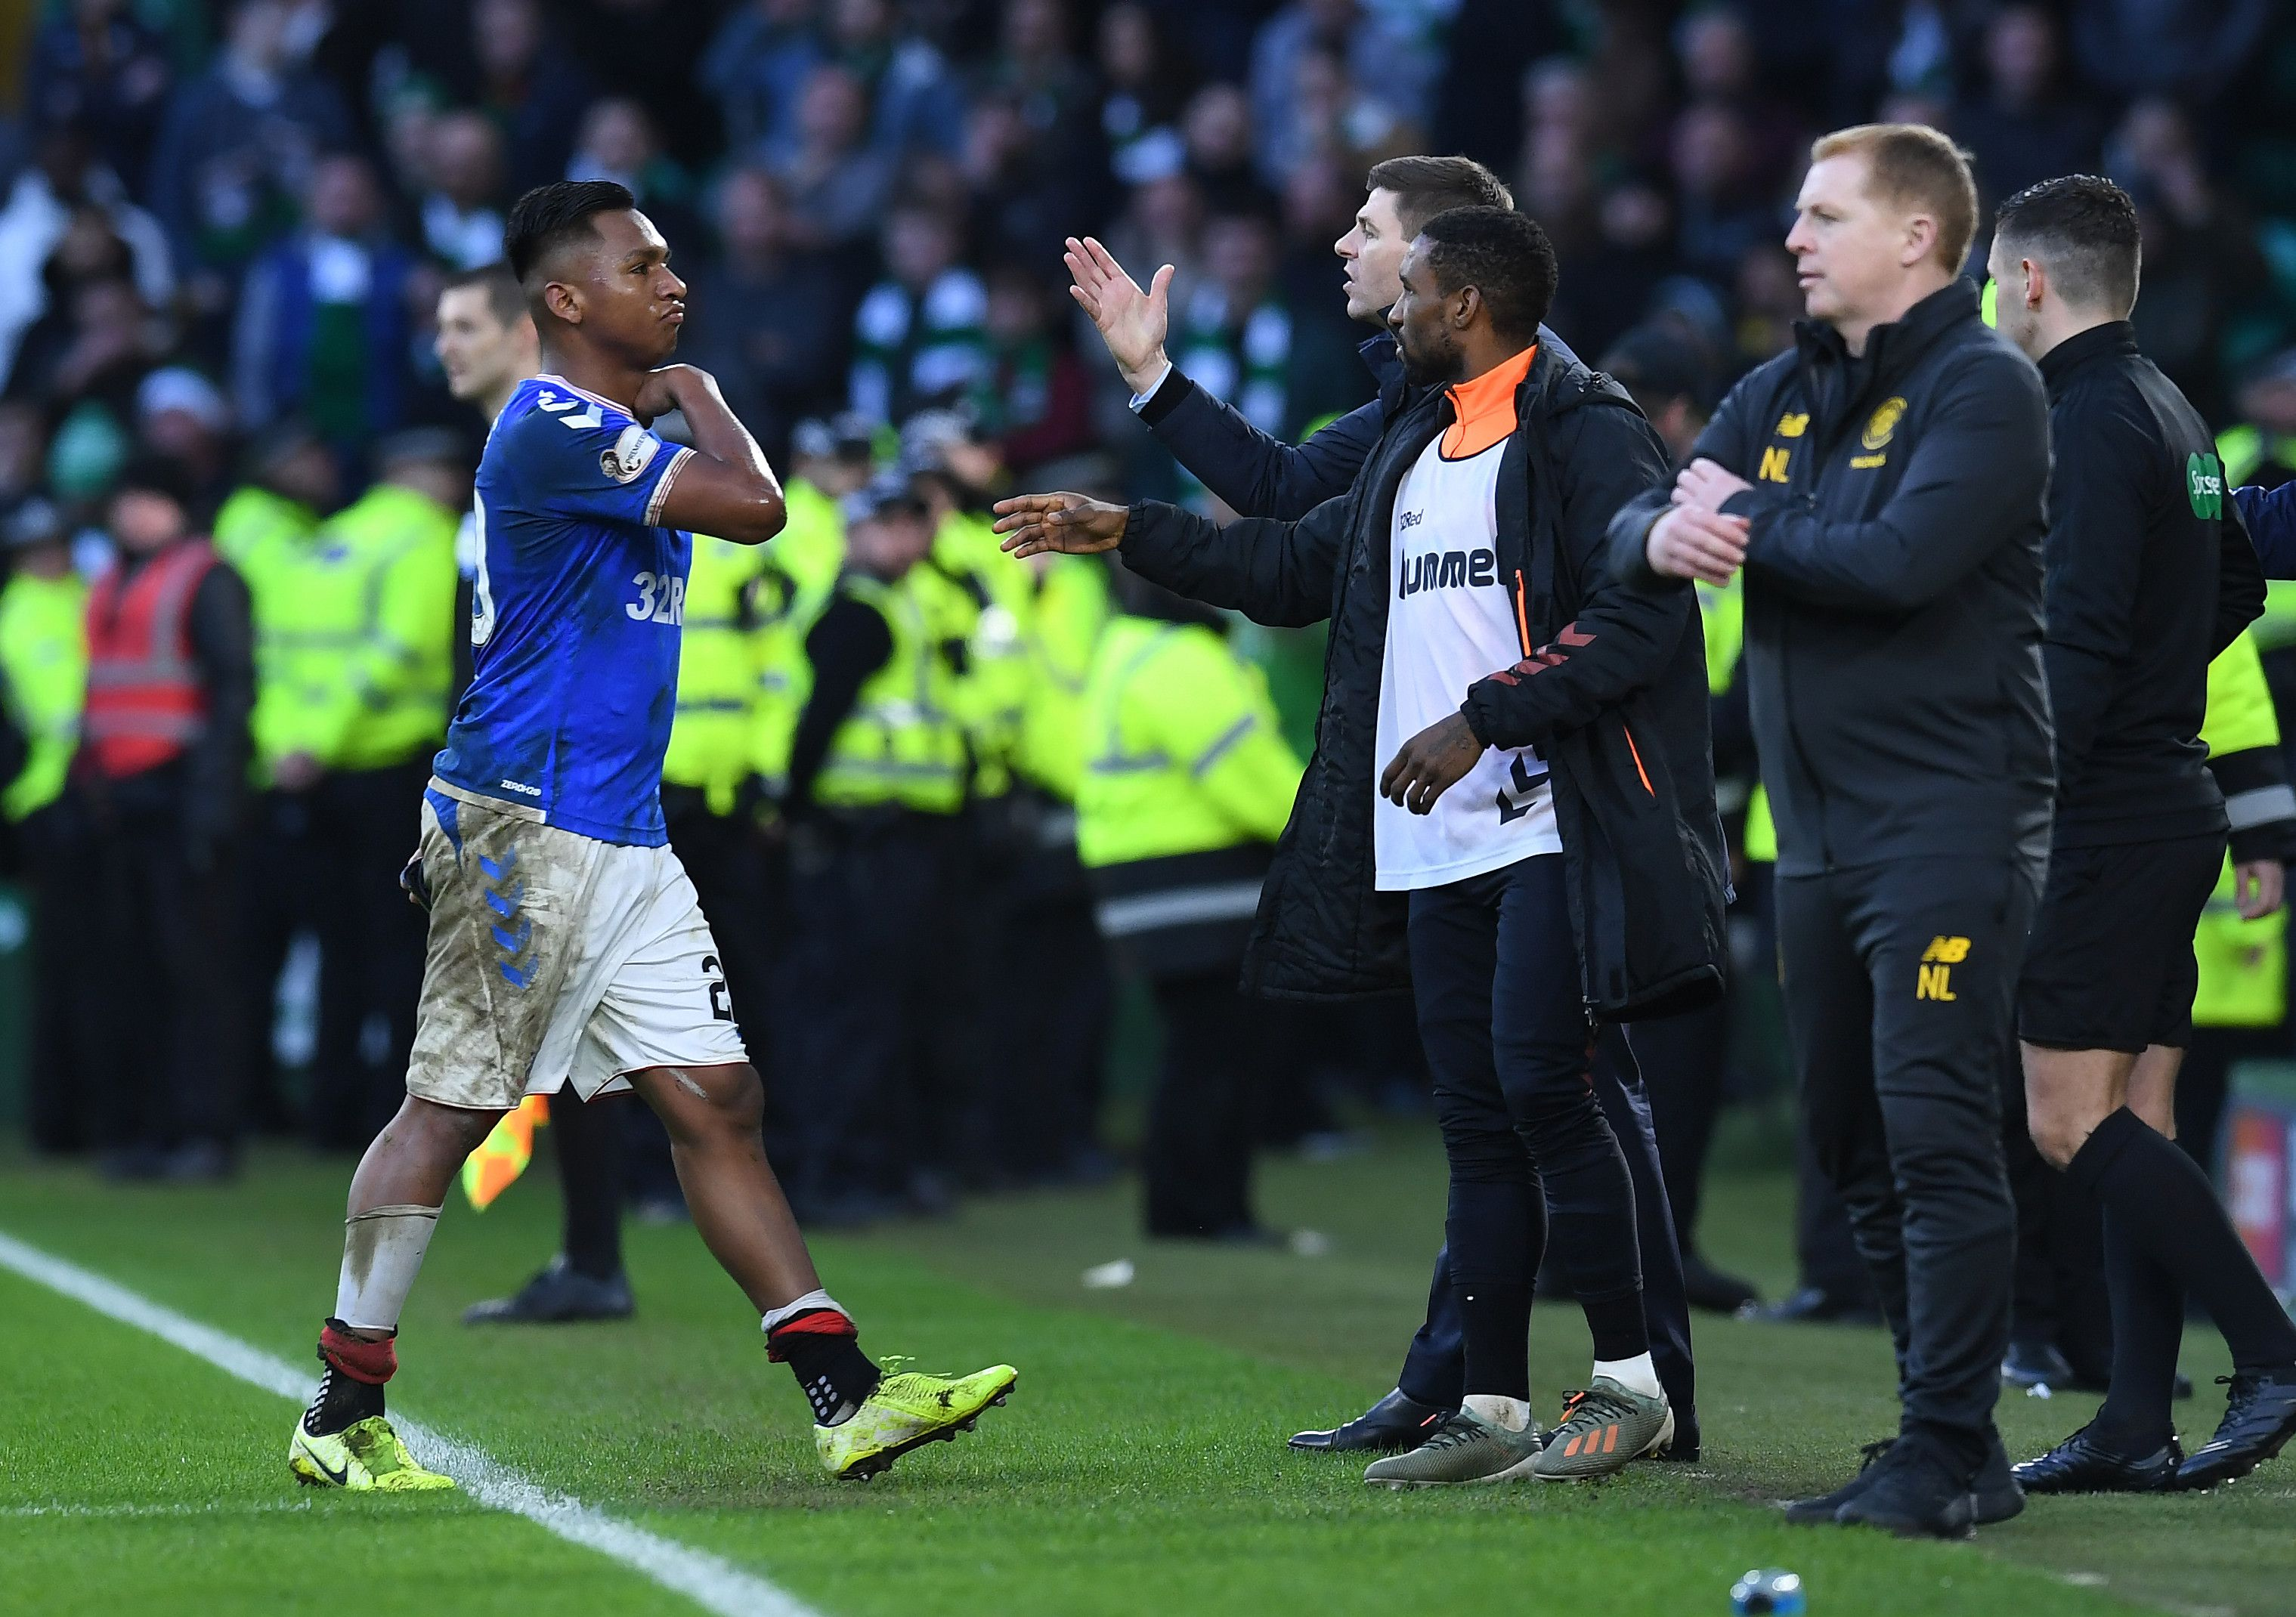 Rangers charged for failing to control players against Celtic and Hibernian but Alfredo Morelos and Ryan Kent avoid individual sanction for gestures